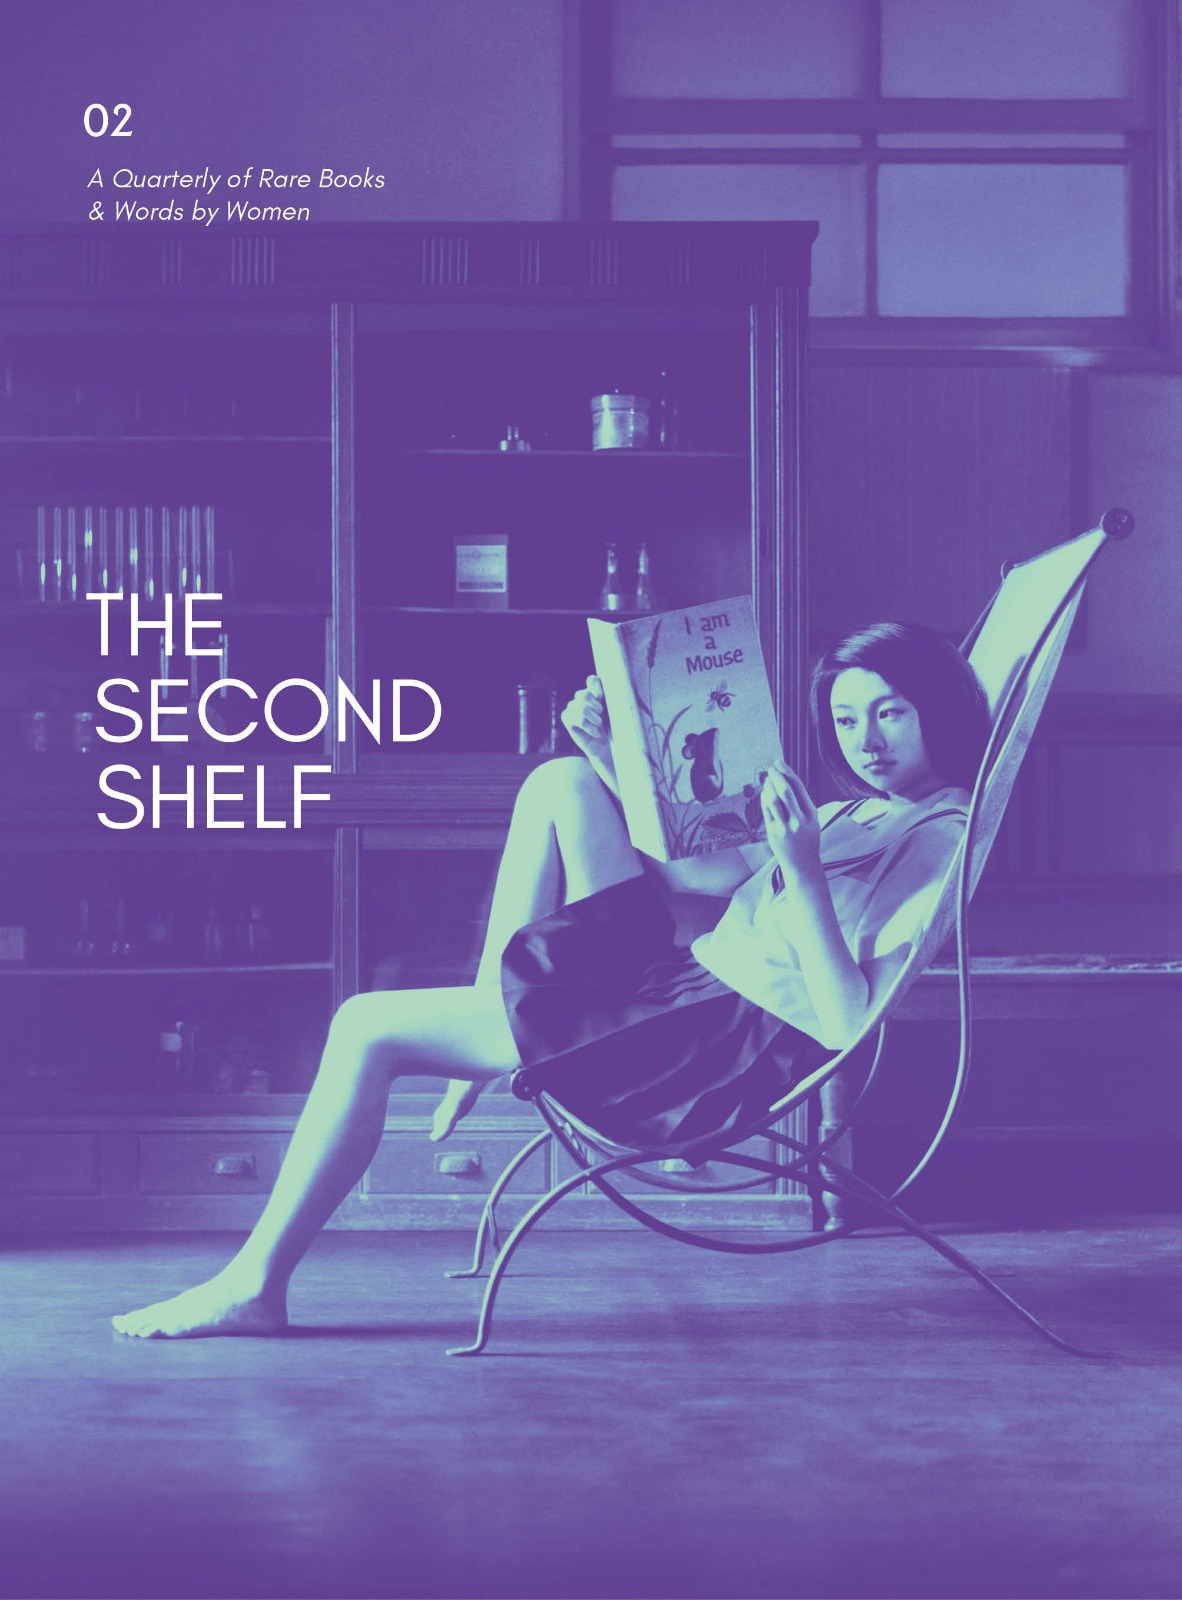 The Second Shelf: Rare Books & Words by Women, Issue #2